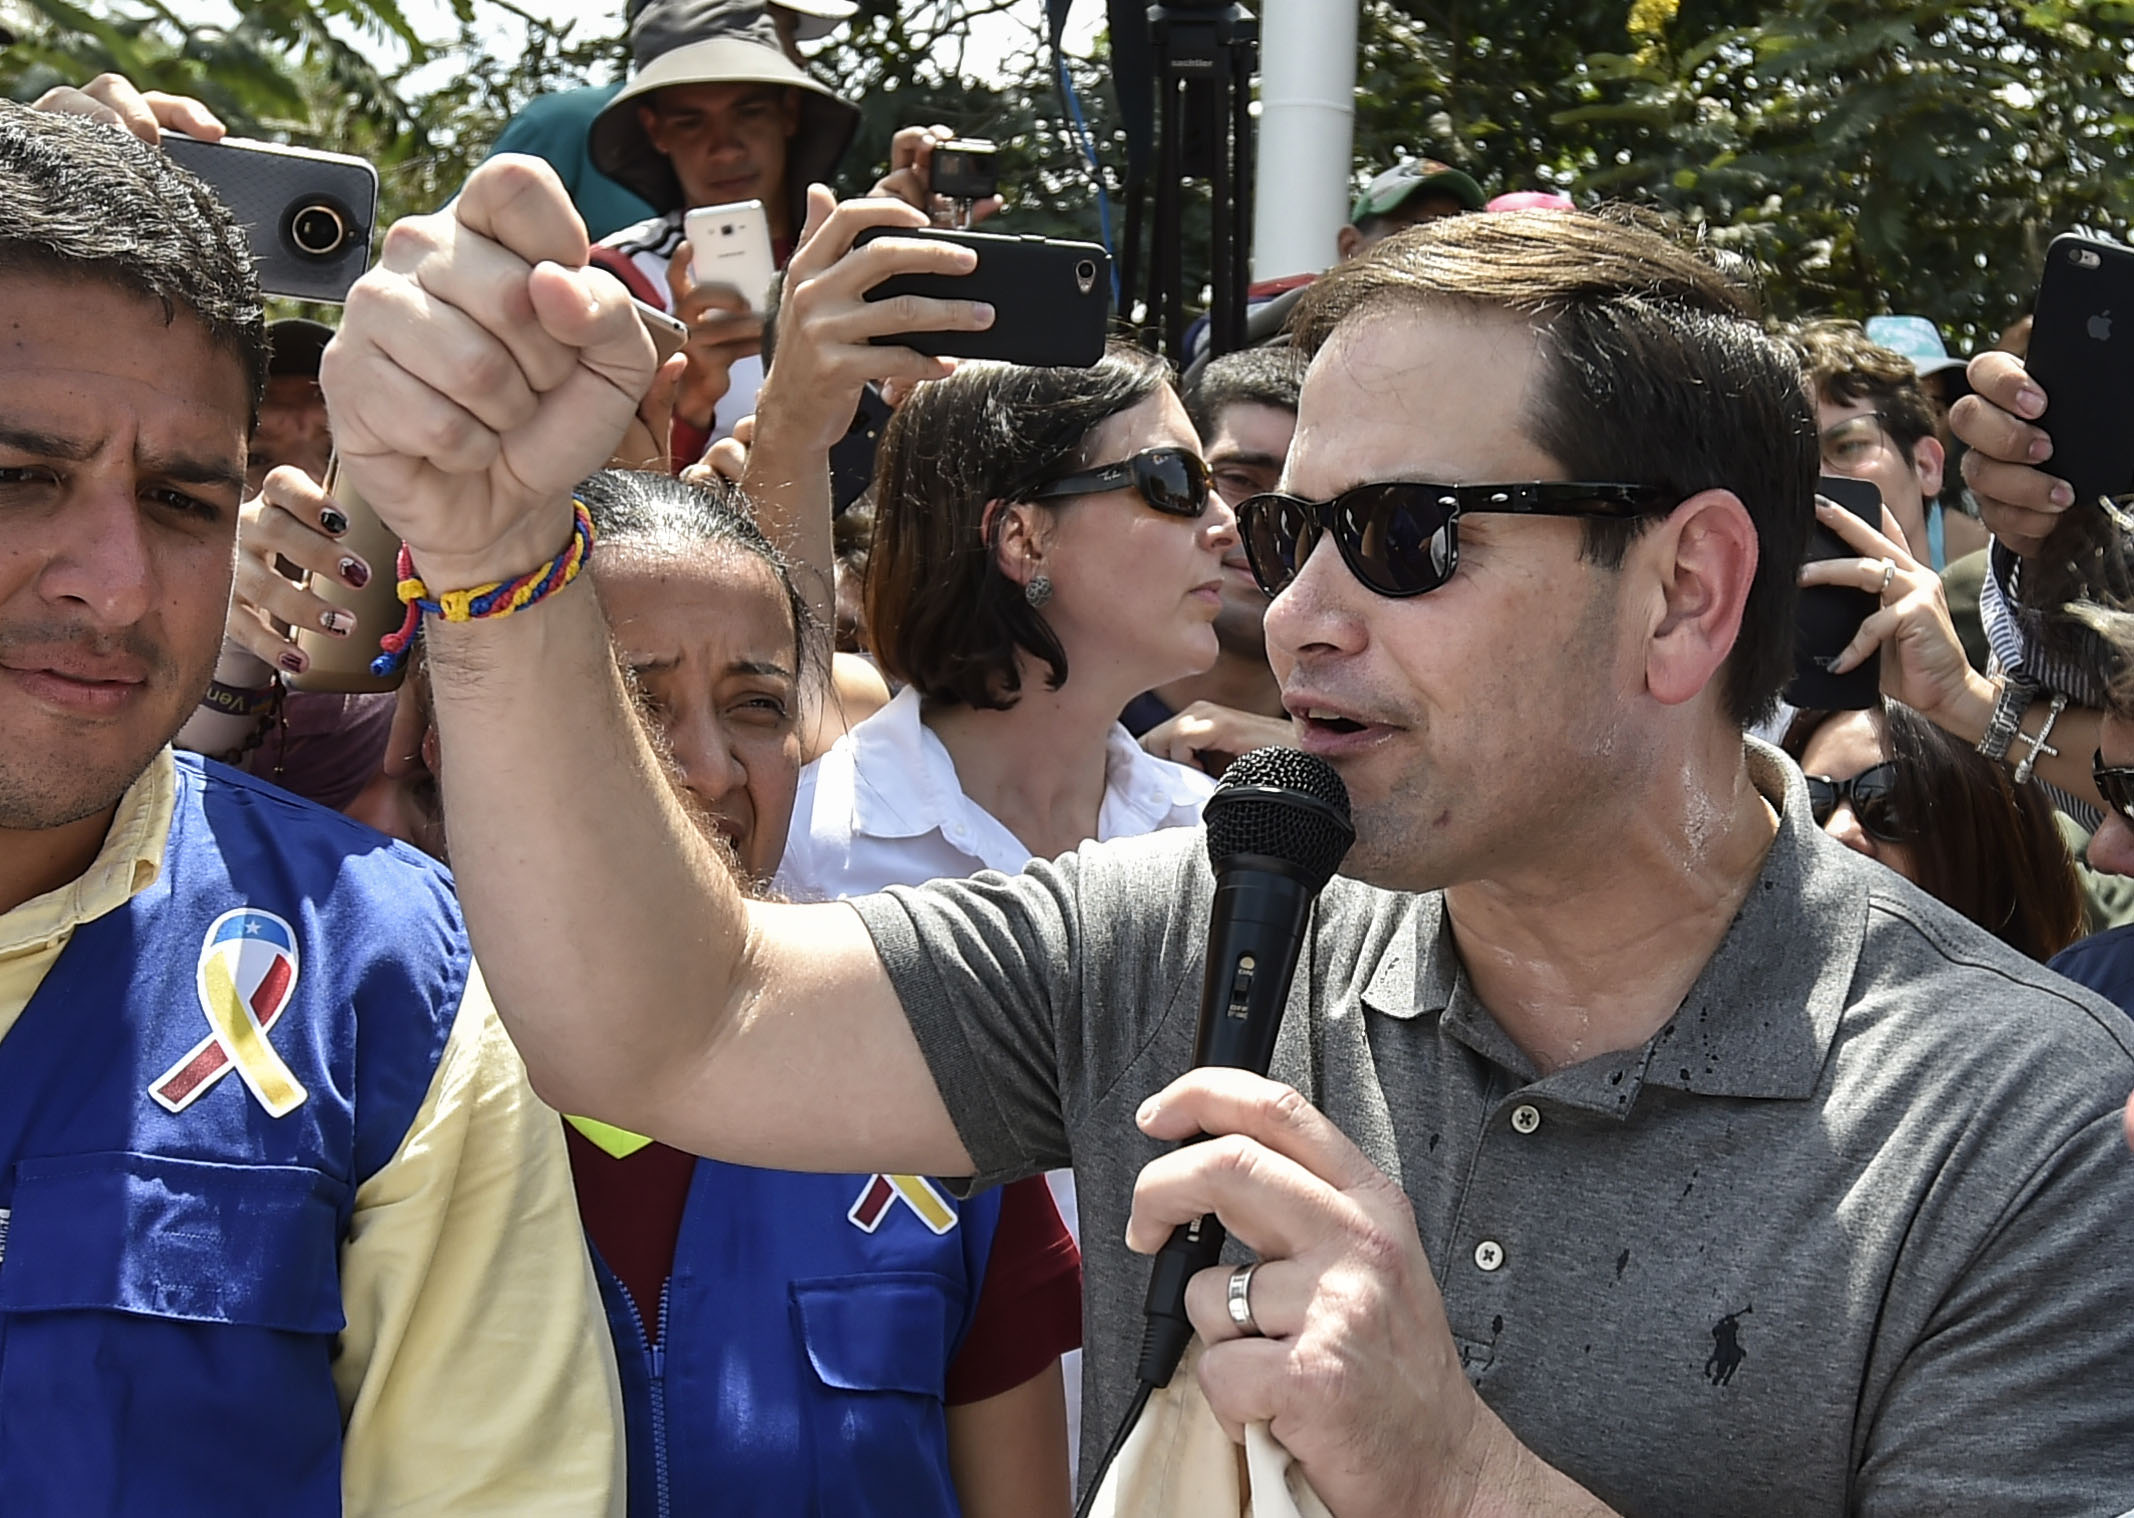 US senator Marco Rubio, addresses the press on the humanitarian aid shipments sent by the US government for Venezuela that are stockpiled at a collection center in the Colombian border, at the Simon Bolivar international bridge in Cucuta, Colombia, border with San Antonio de Tachira, Venezuela on February 17, 2019. - Thousands of volunteers in Venezuela will begin mobilizing on Sunday to bring American aid into their crisis-hit country despite a blockade by President Nicolas Maduro who claims the assistance could be cover for a US invasion. US aid that has been piling up in the Colombian border town of Cucuta has become the frontline of the confrontation between Guaido and Maduro. (Photo by Luis ROBAYO / AFP) (Photo credit should read LUIS ROBAYO/AFP/Getty Images)